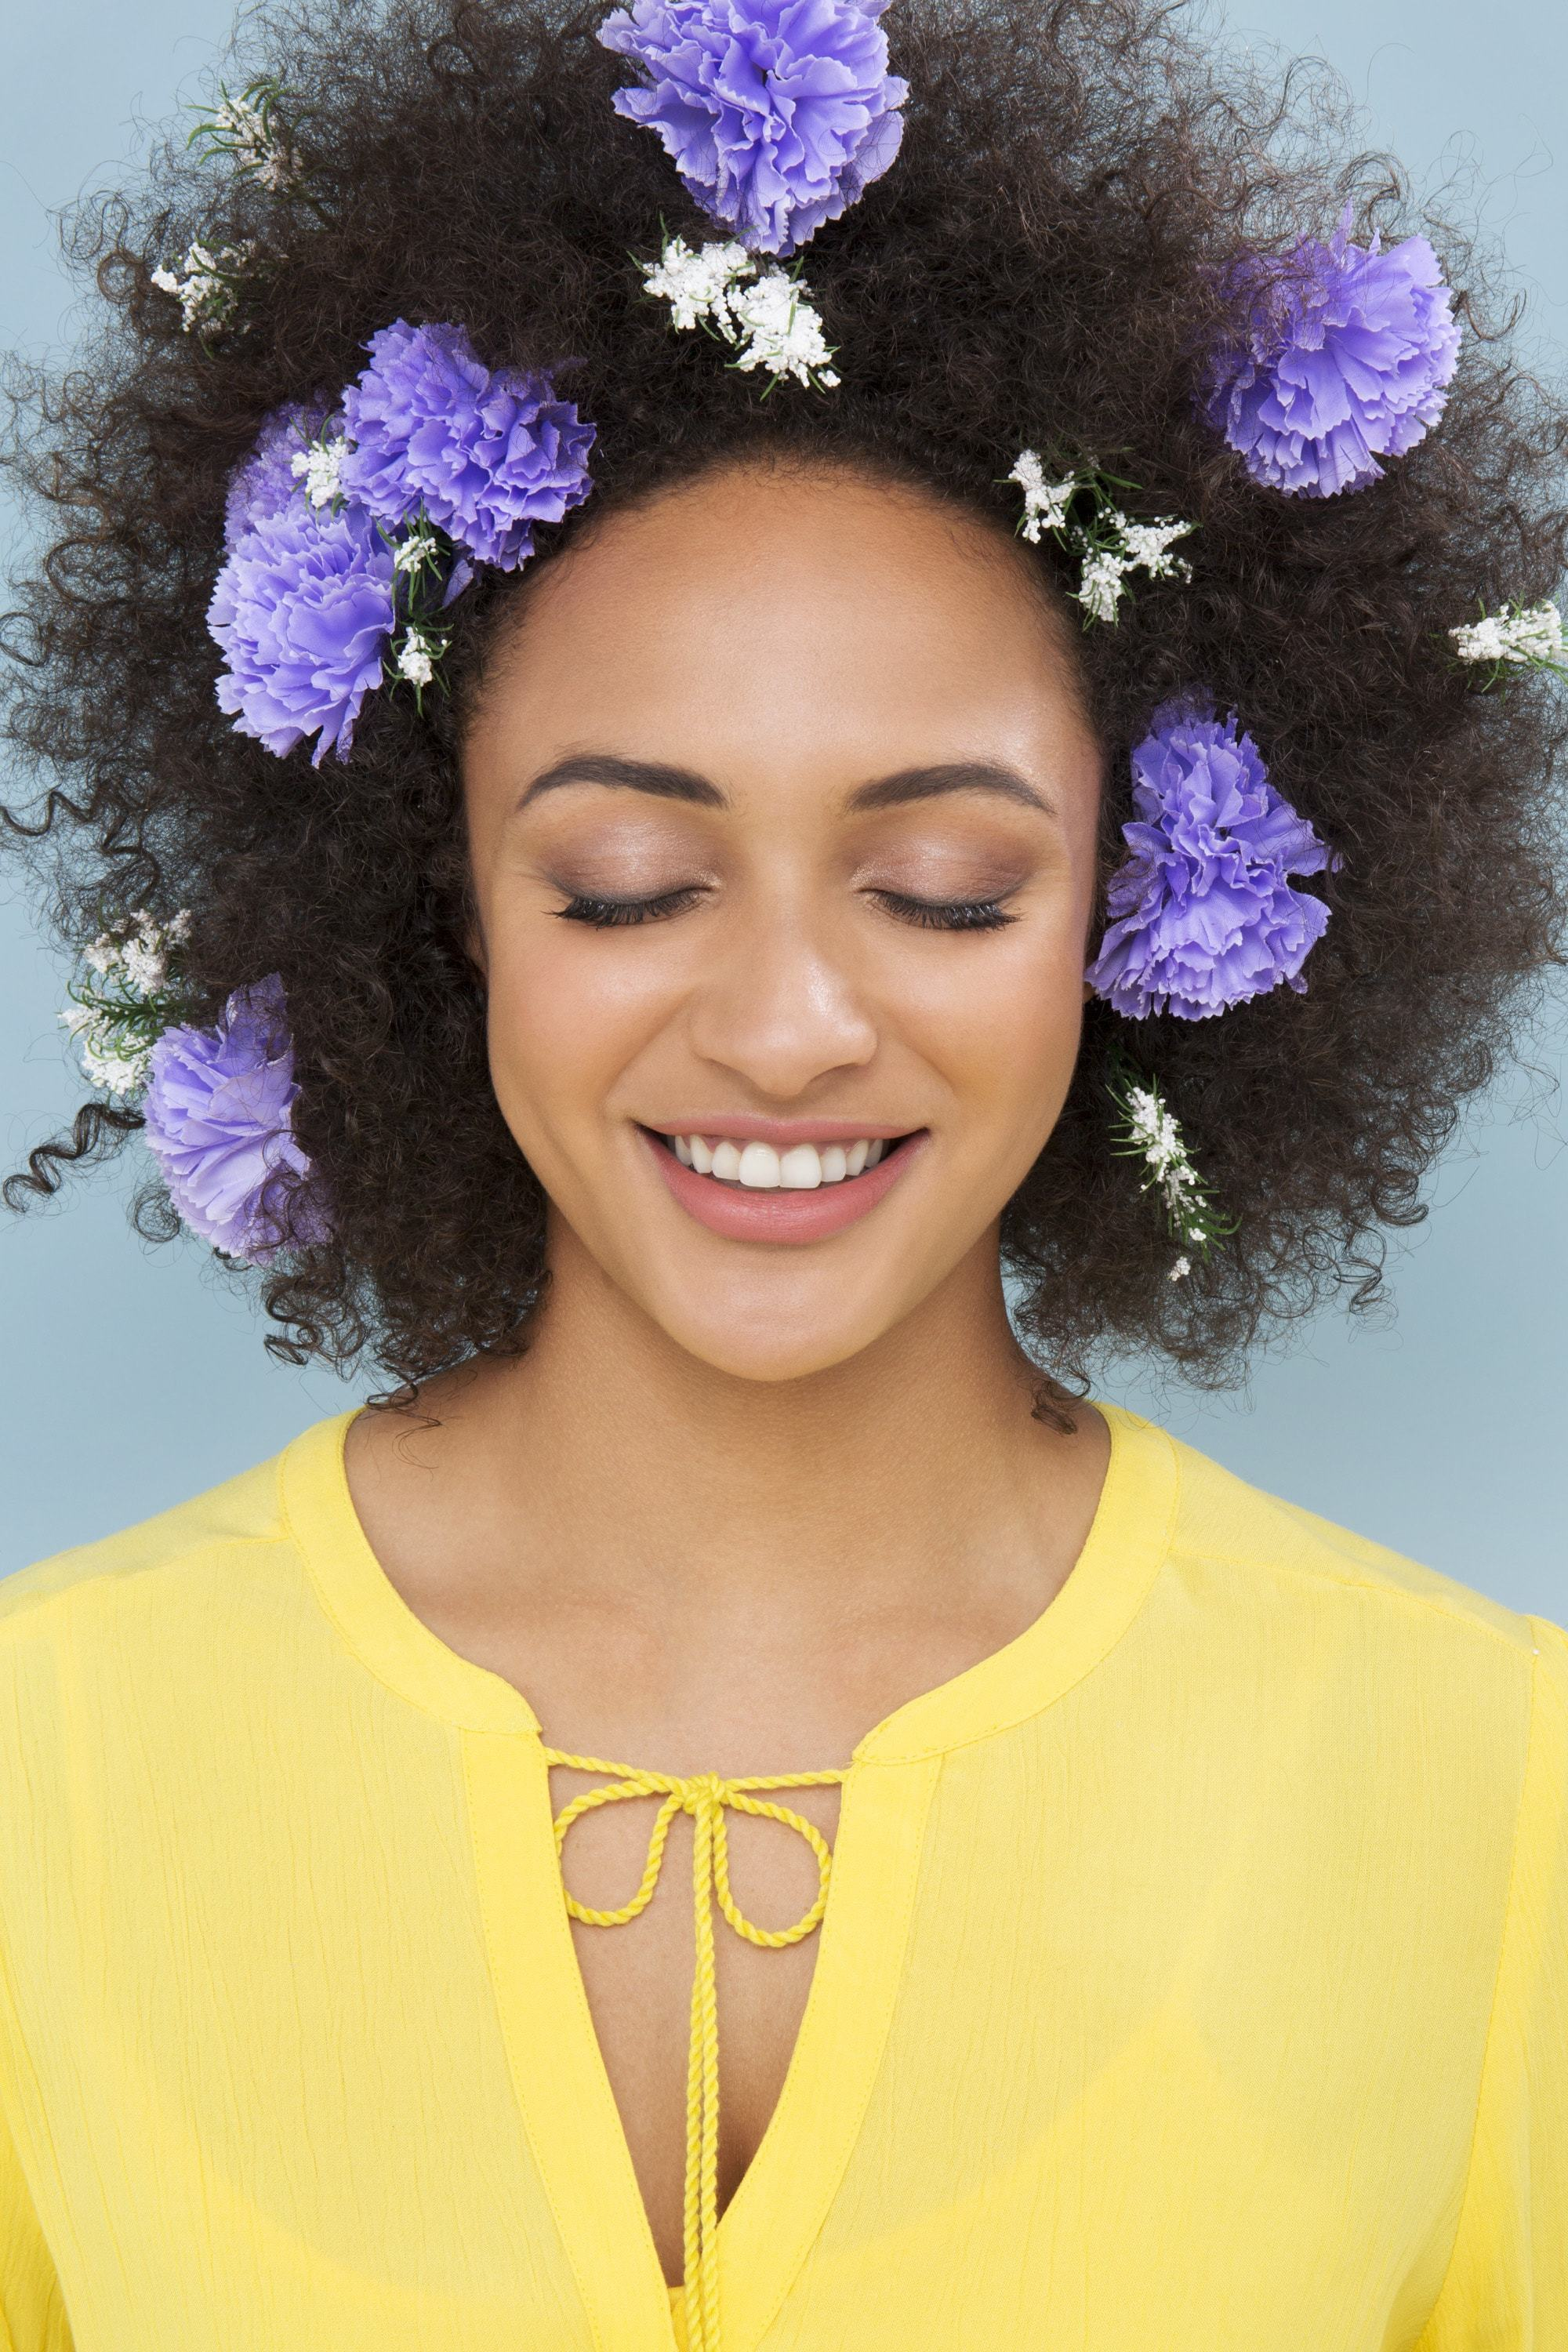 Curly wedding hair: Model with afro hair with flowers in it